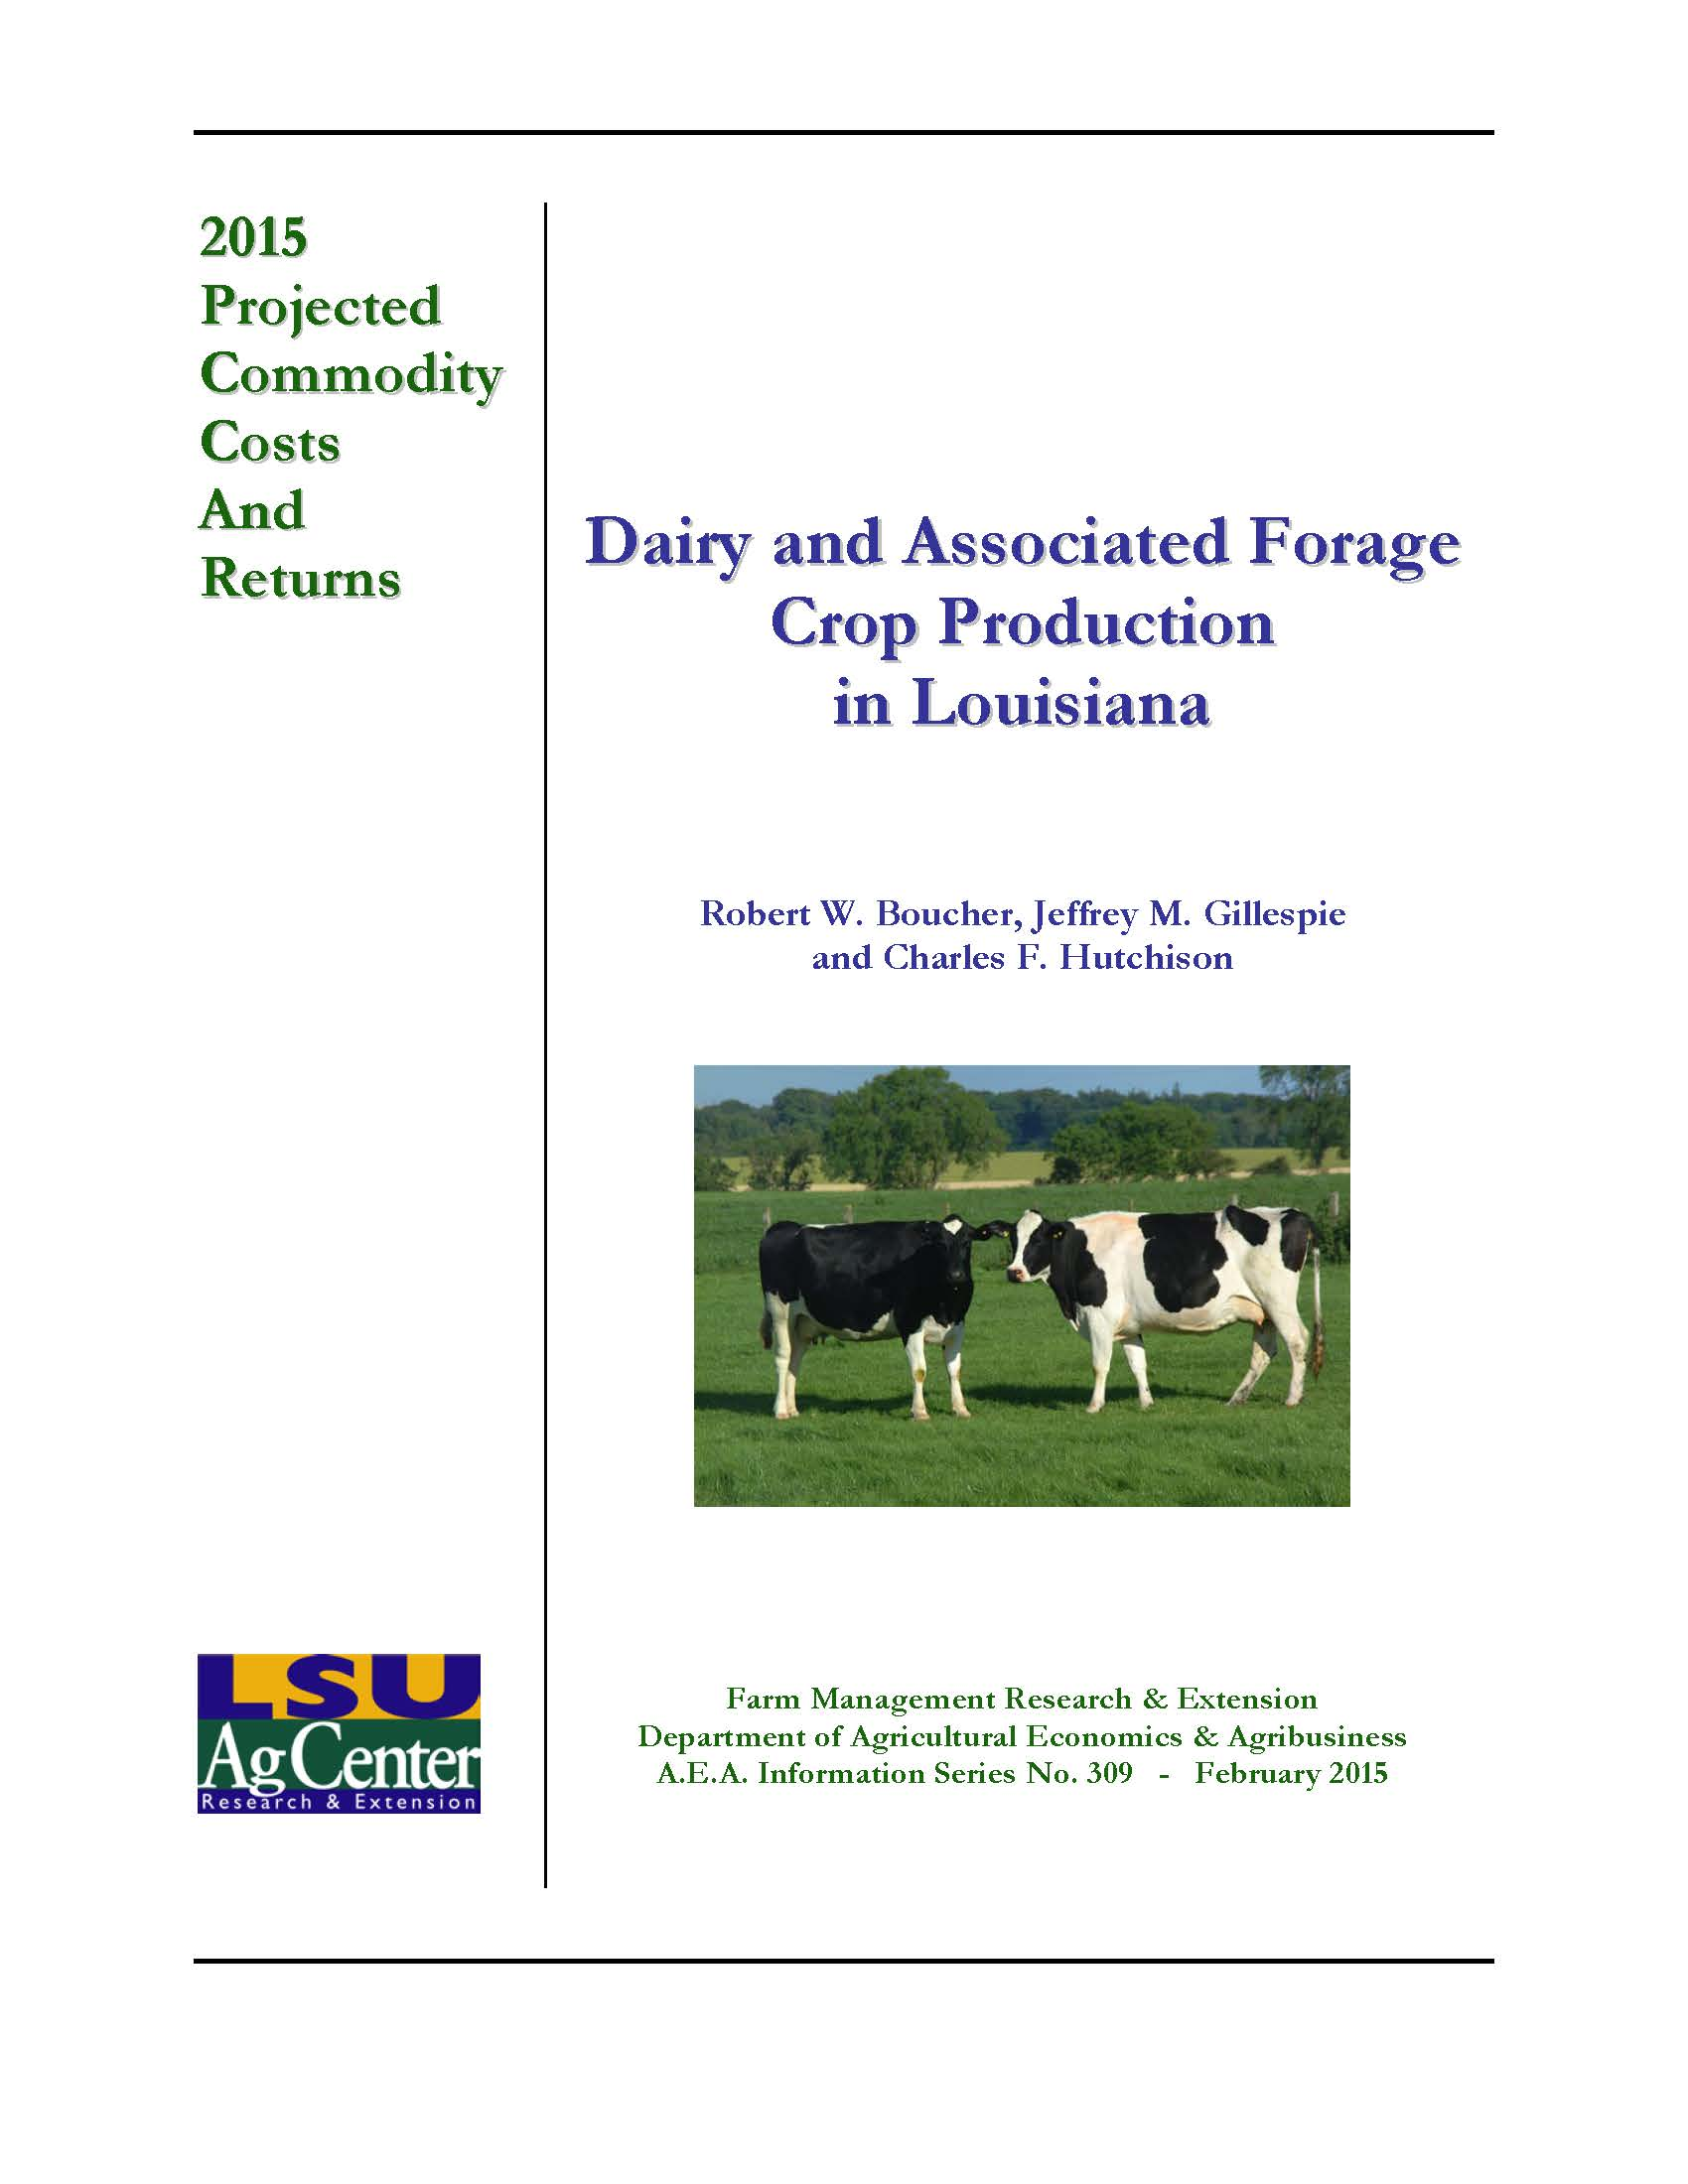 Projected Costs and Returns for Dairy and Associated Forage Crop Production in Louisiana 2015.